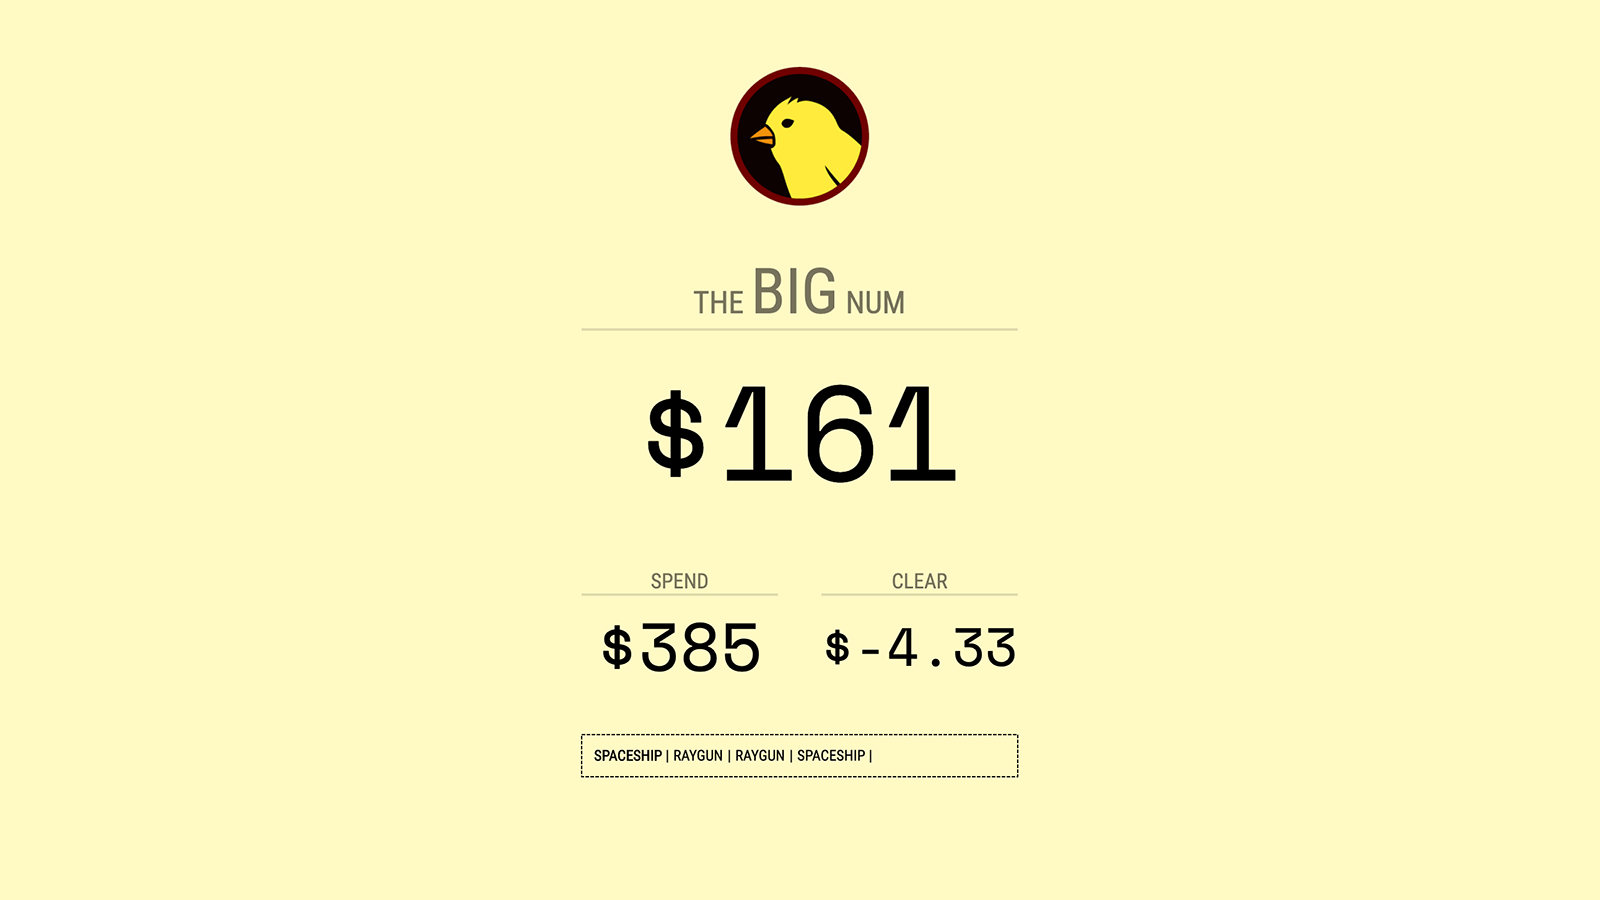 Track profitability with THE BIG NUMBER